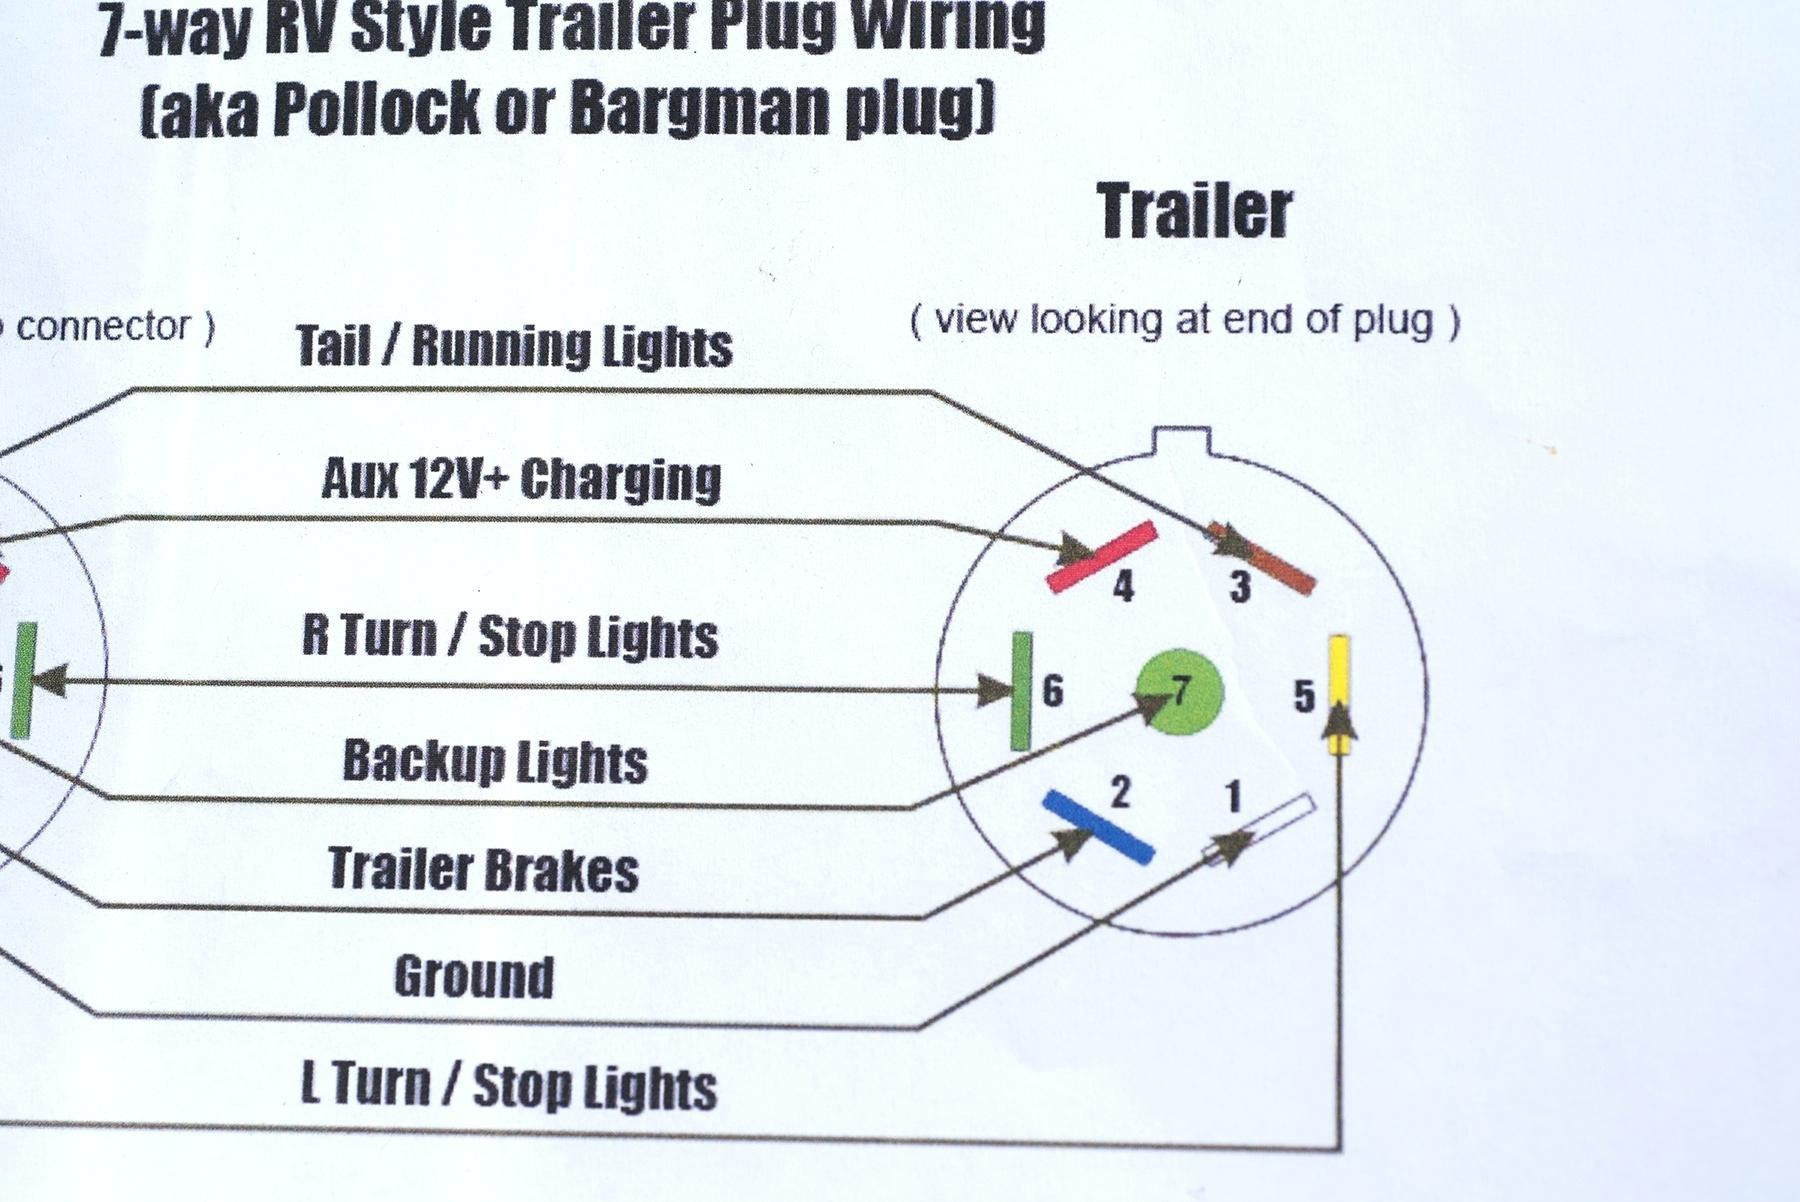 Trailer Wiring Diagram 4 Way Round - Detailed Wiring Diagram - Wiring Diagram For Trailer Lights 4 Way